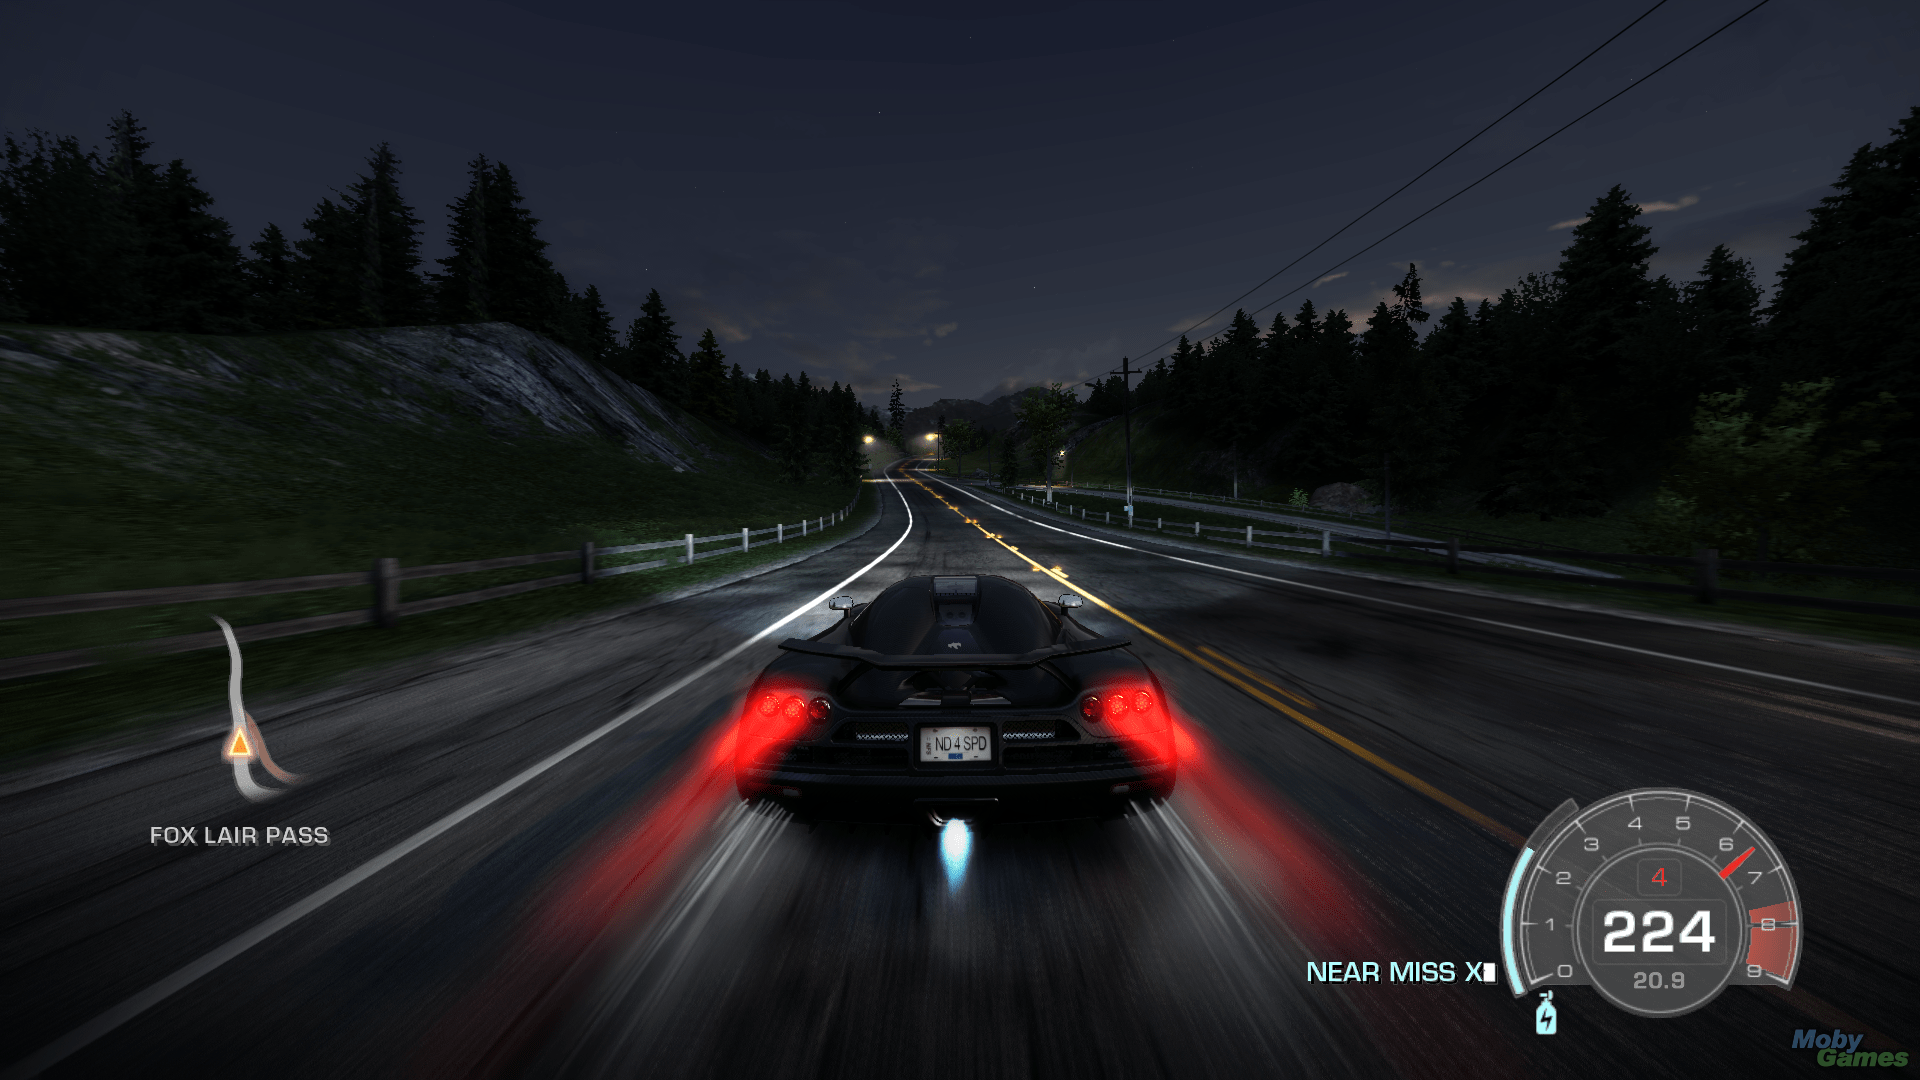 Police Car Chase Wallpaper Need For Speed Hot Pursuit Game Free Download